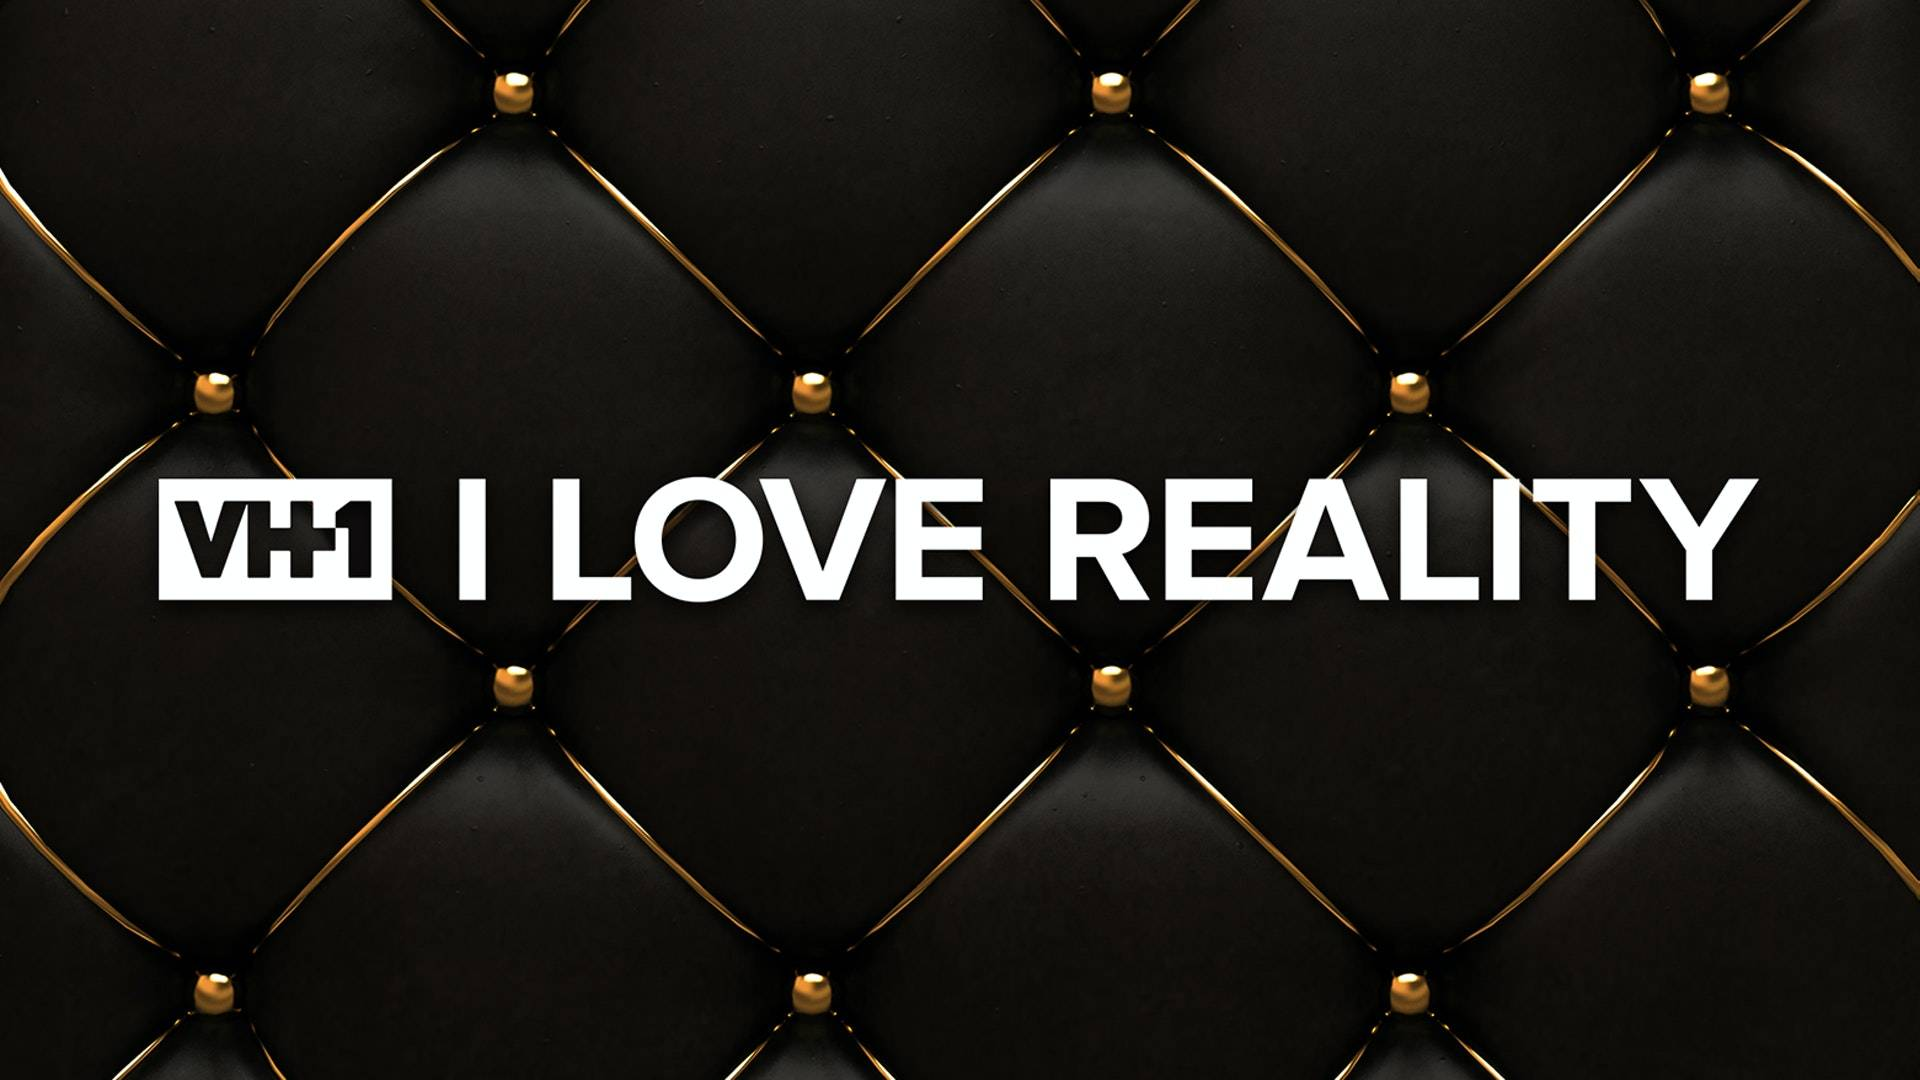 Watch VH1's I Love Reality Channel On Pluto TV